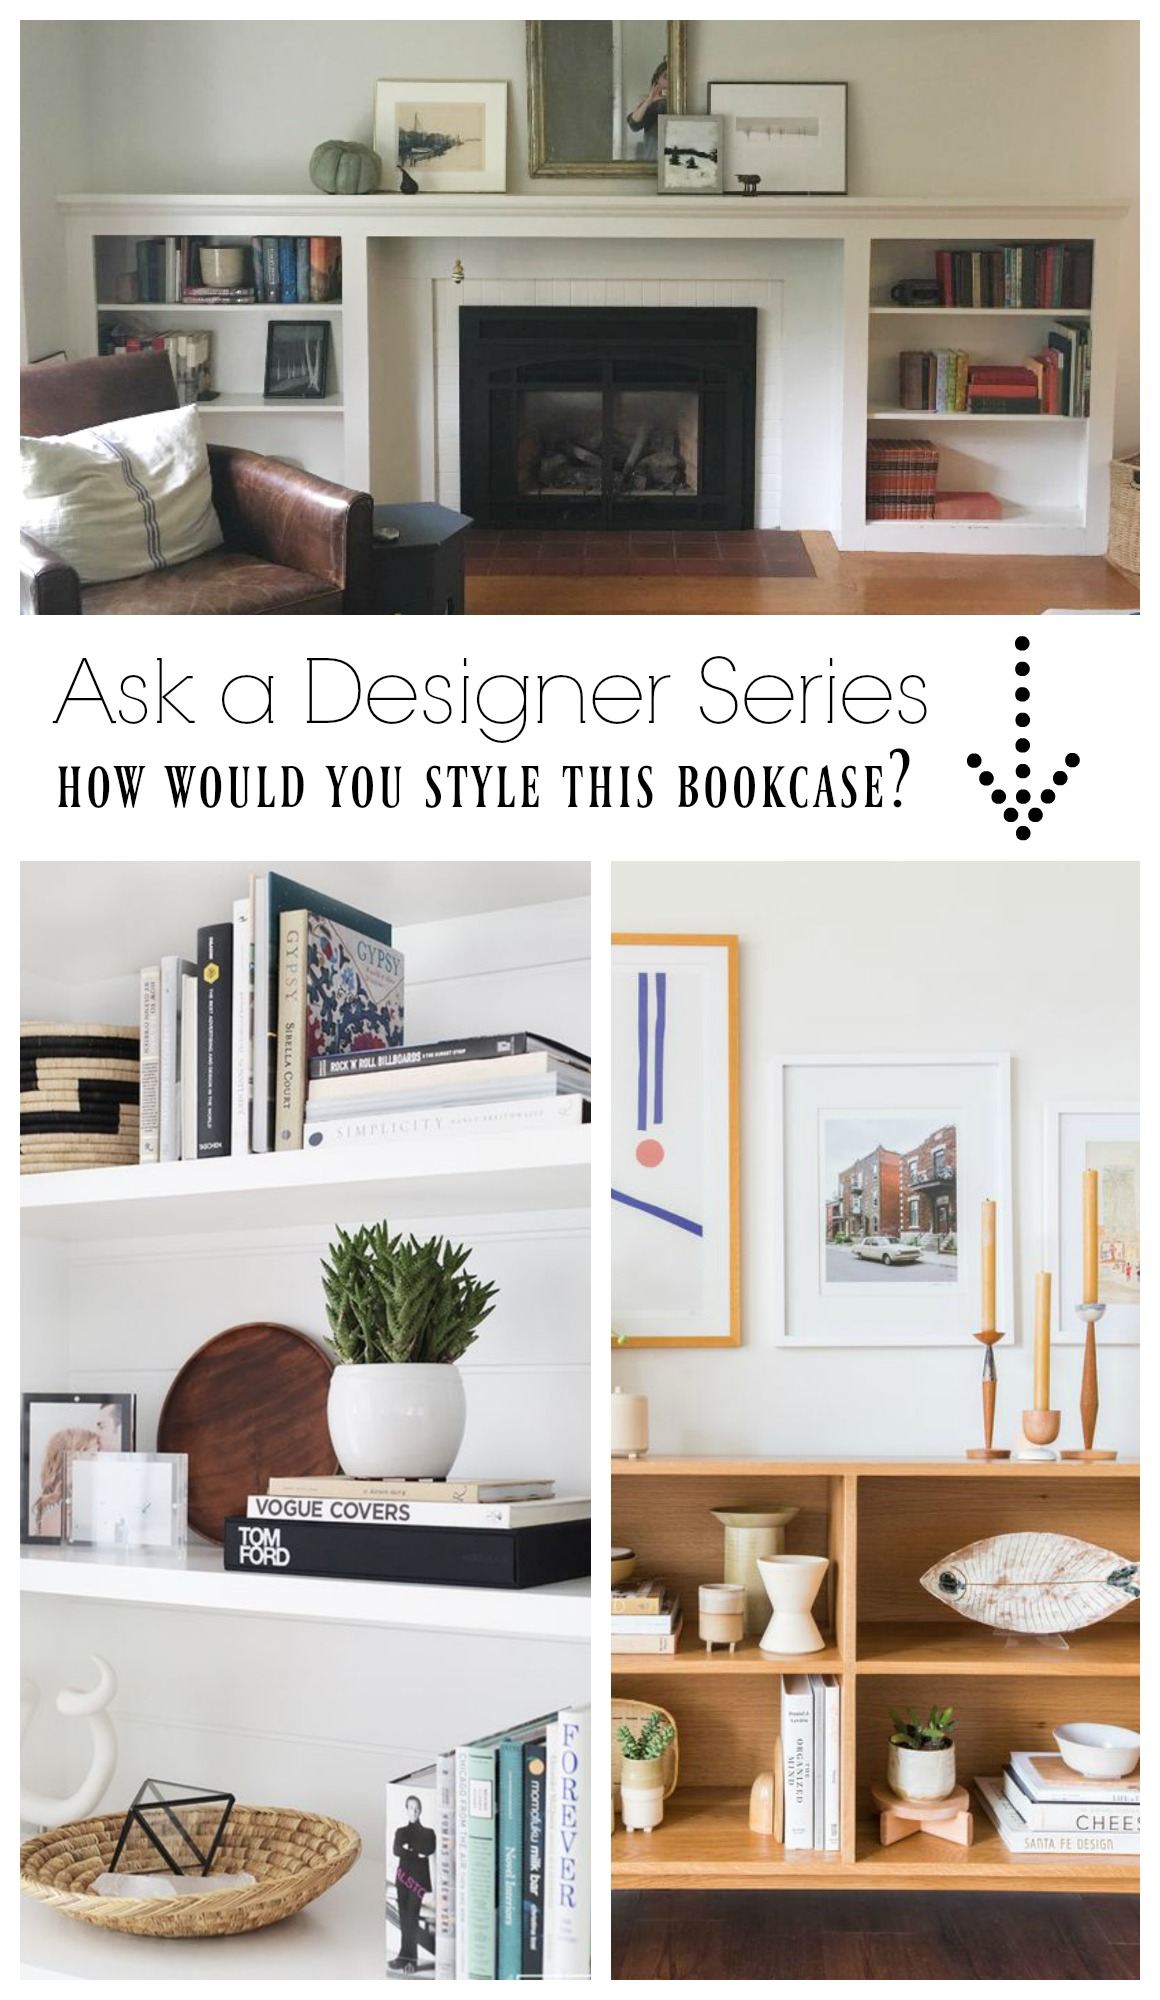 Ask a Designer Series- Bookcase Styling